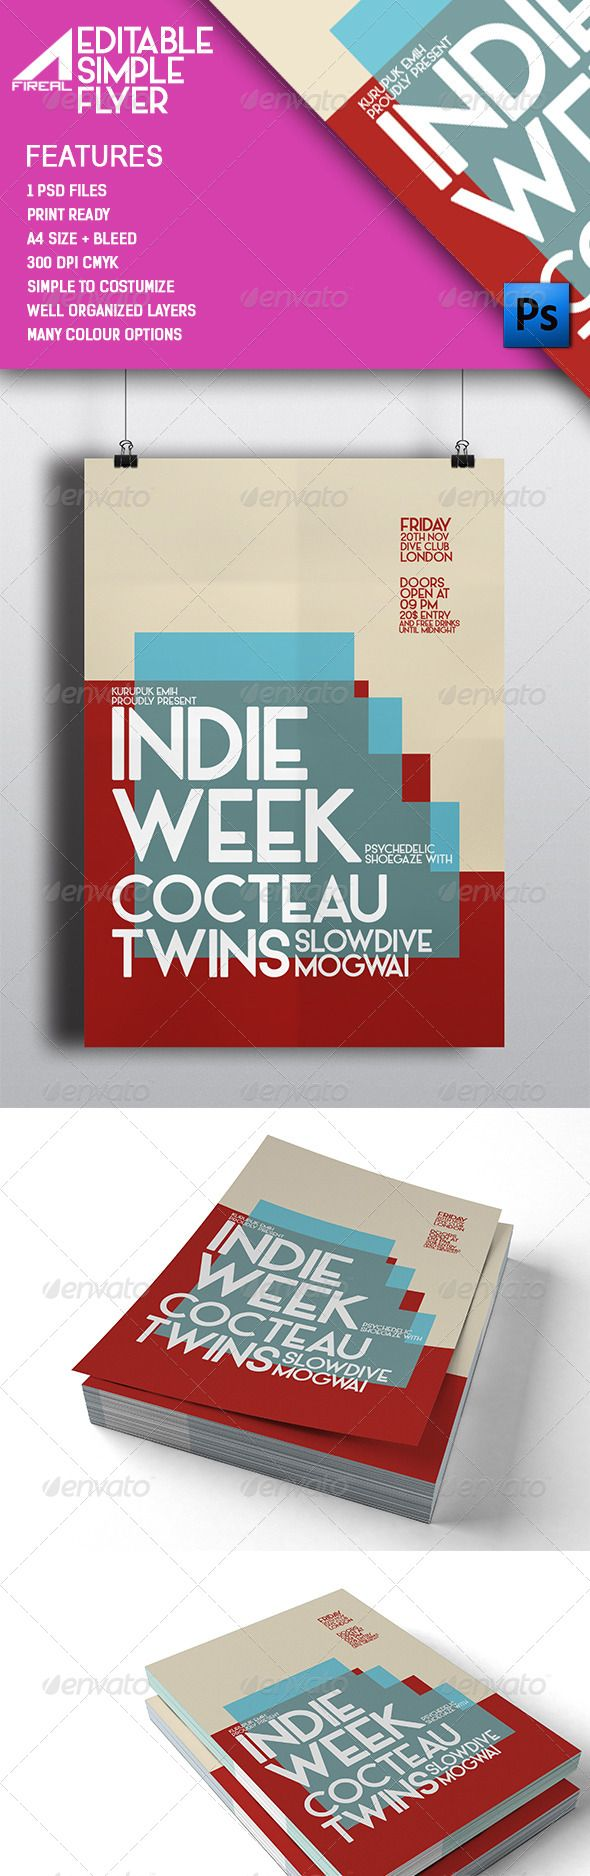 simple flyer templates